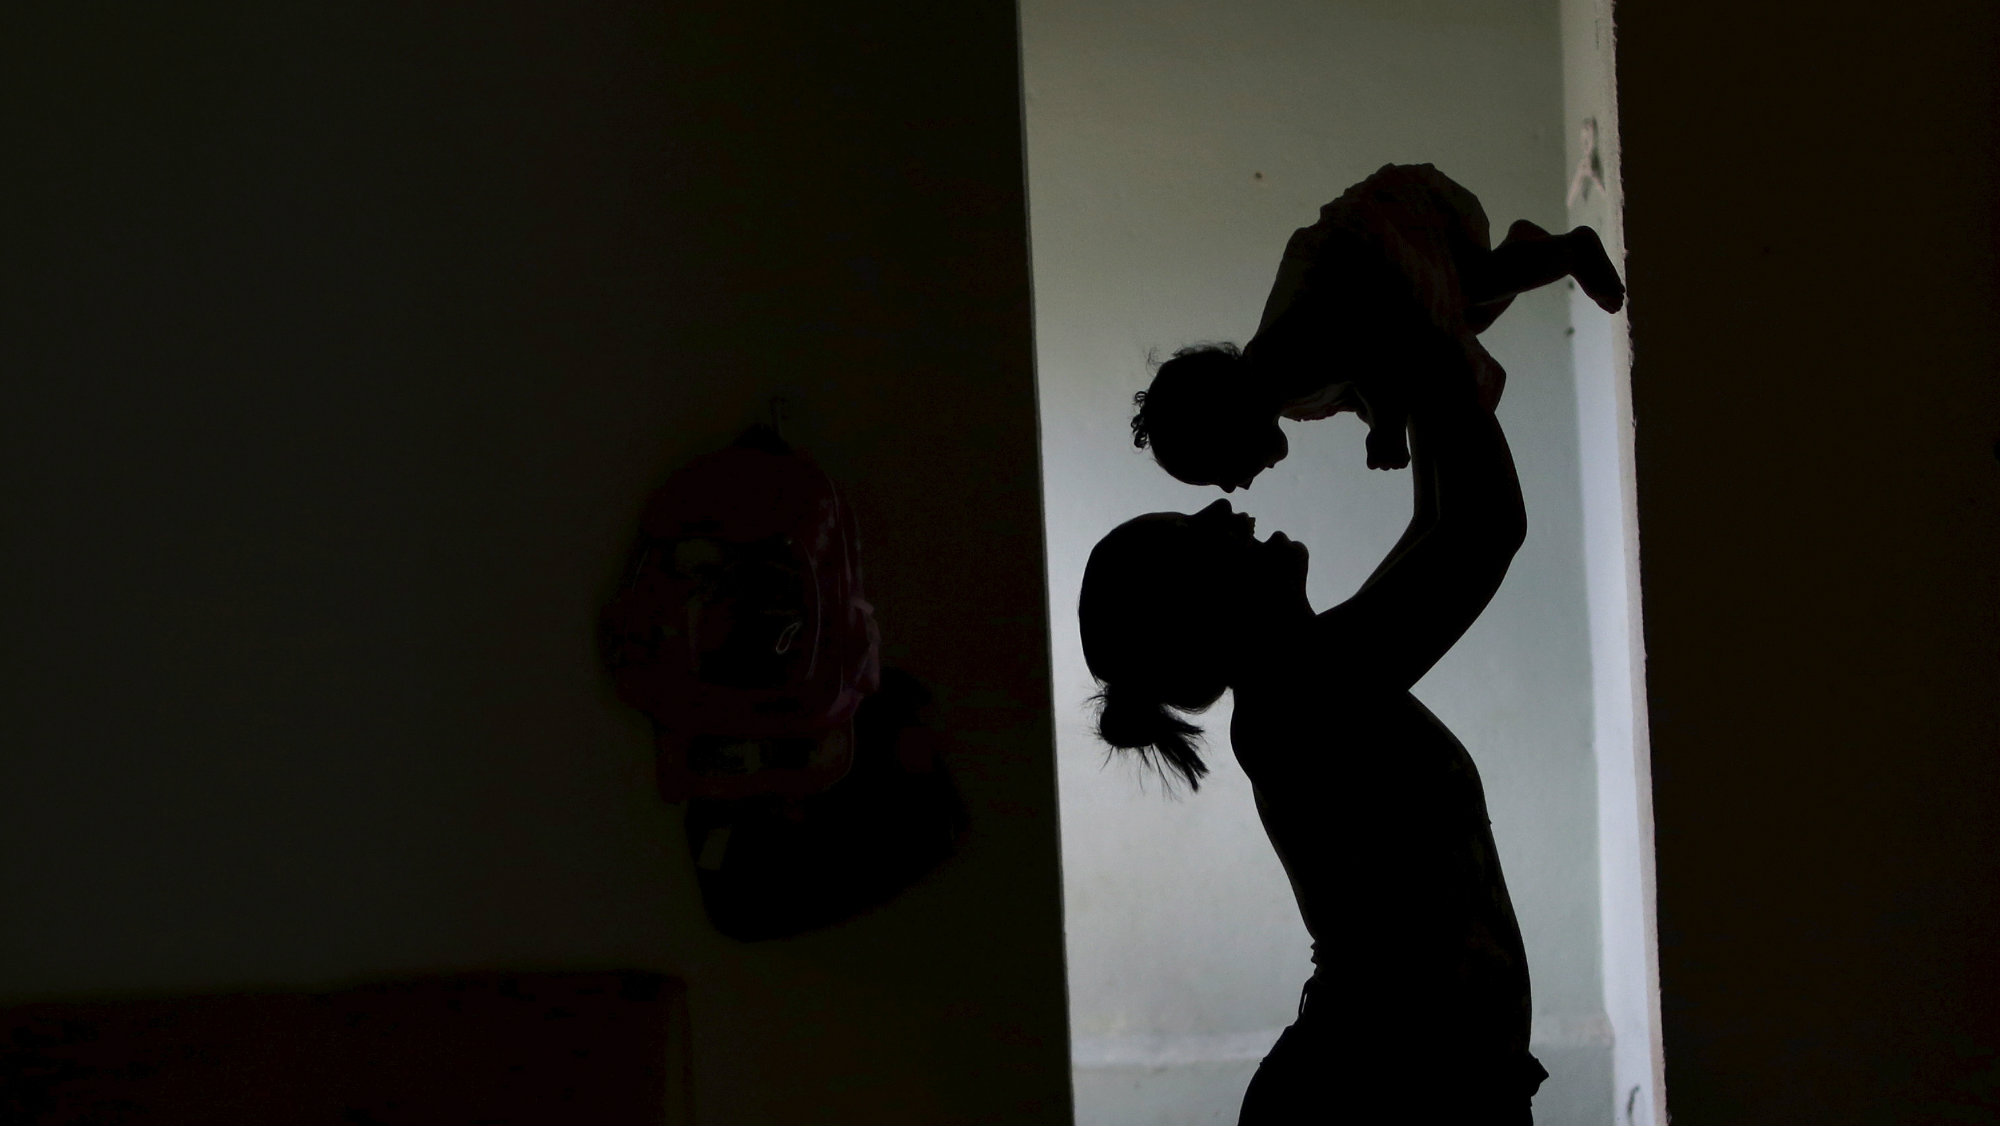 Rosana Vieira Alves holds her 4-month-old daughter Luana Vieira at their house in Olinda, Brazil, February 3, 2016.